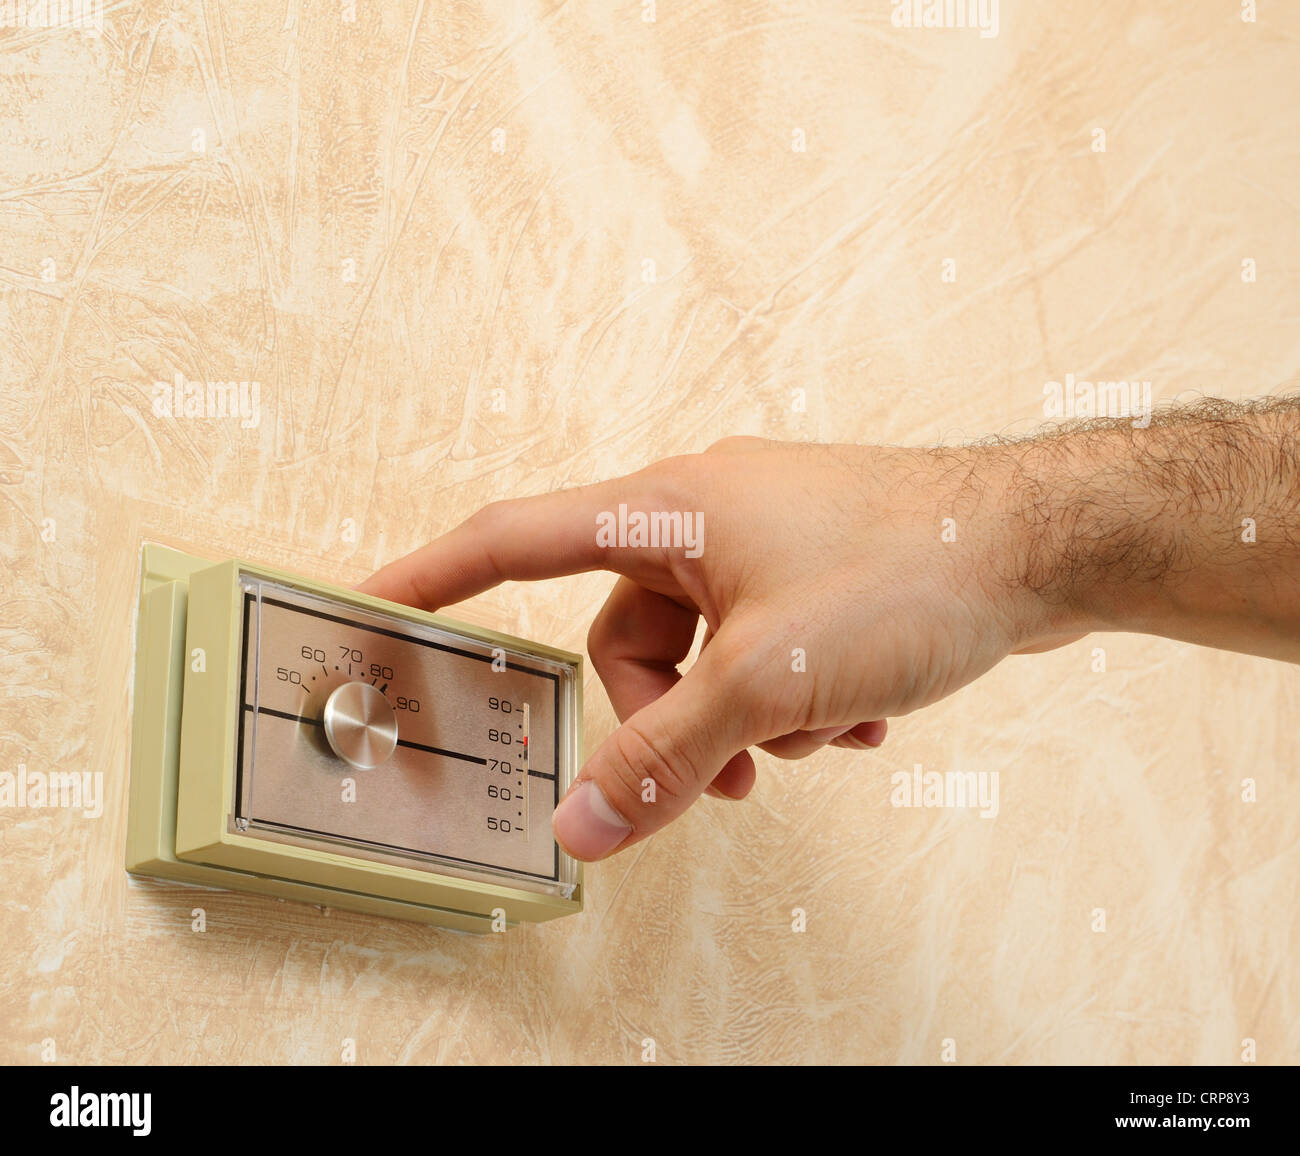 adjusting the room temperature - Stock Image